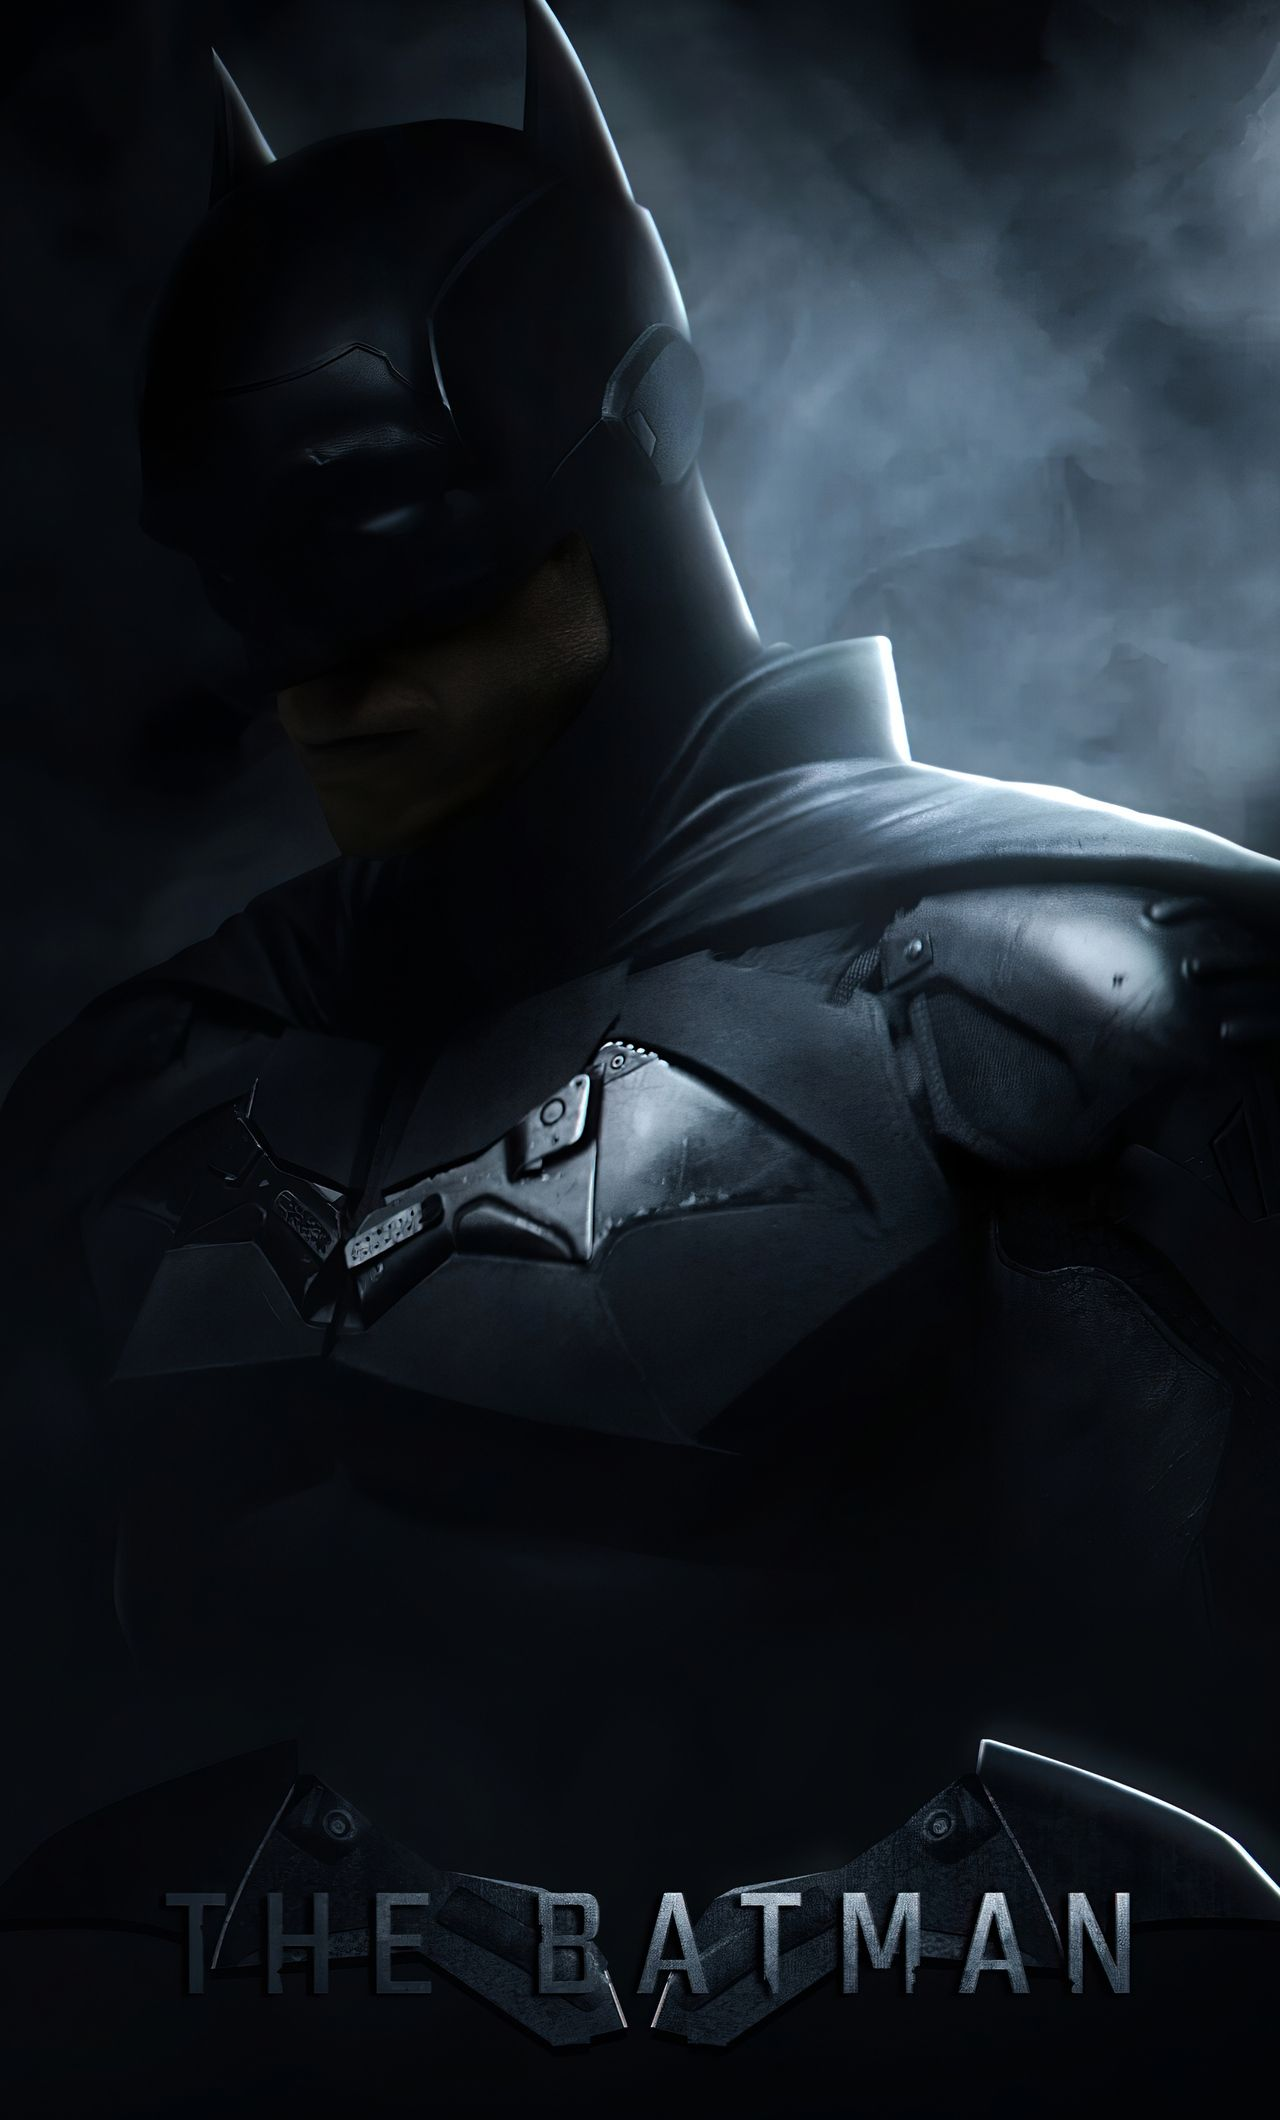 The Batman 2021 Logo Iphone Wallpapers Wallpaper Cave